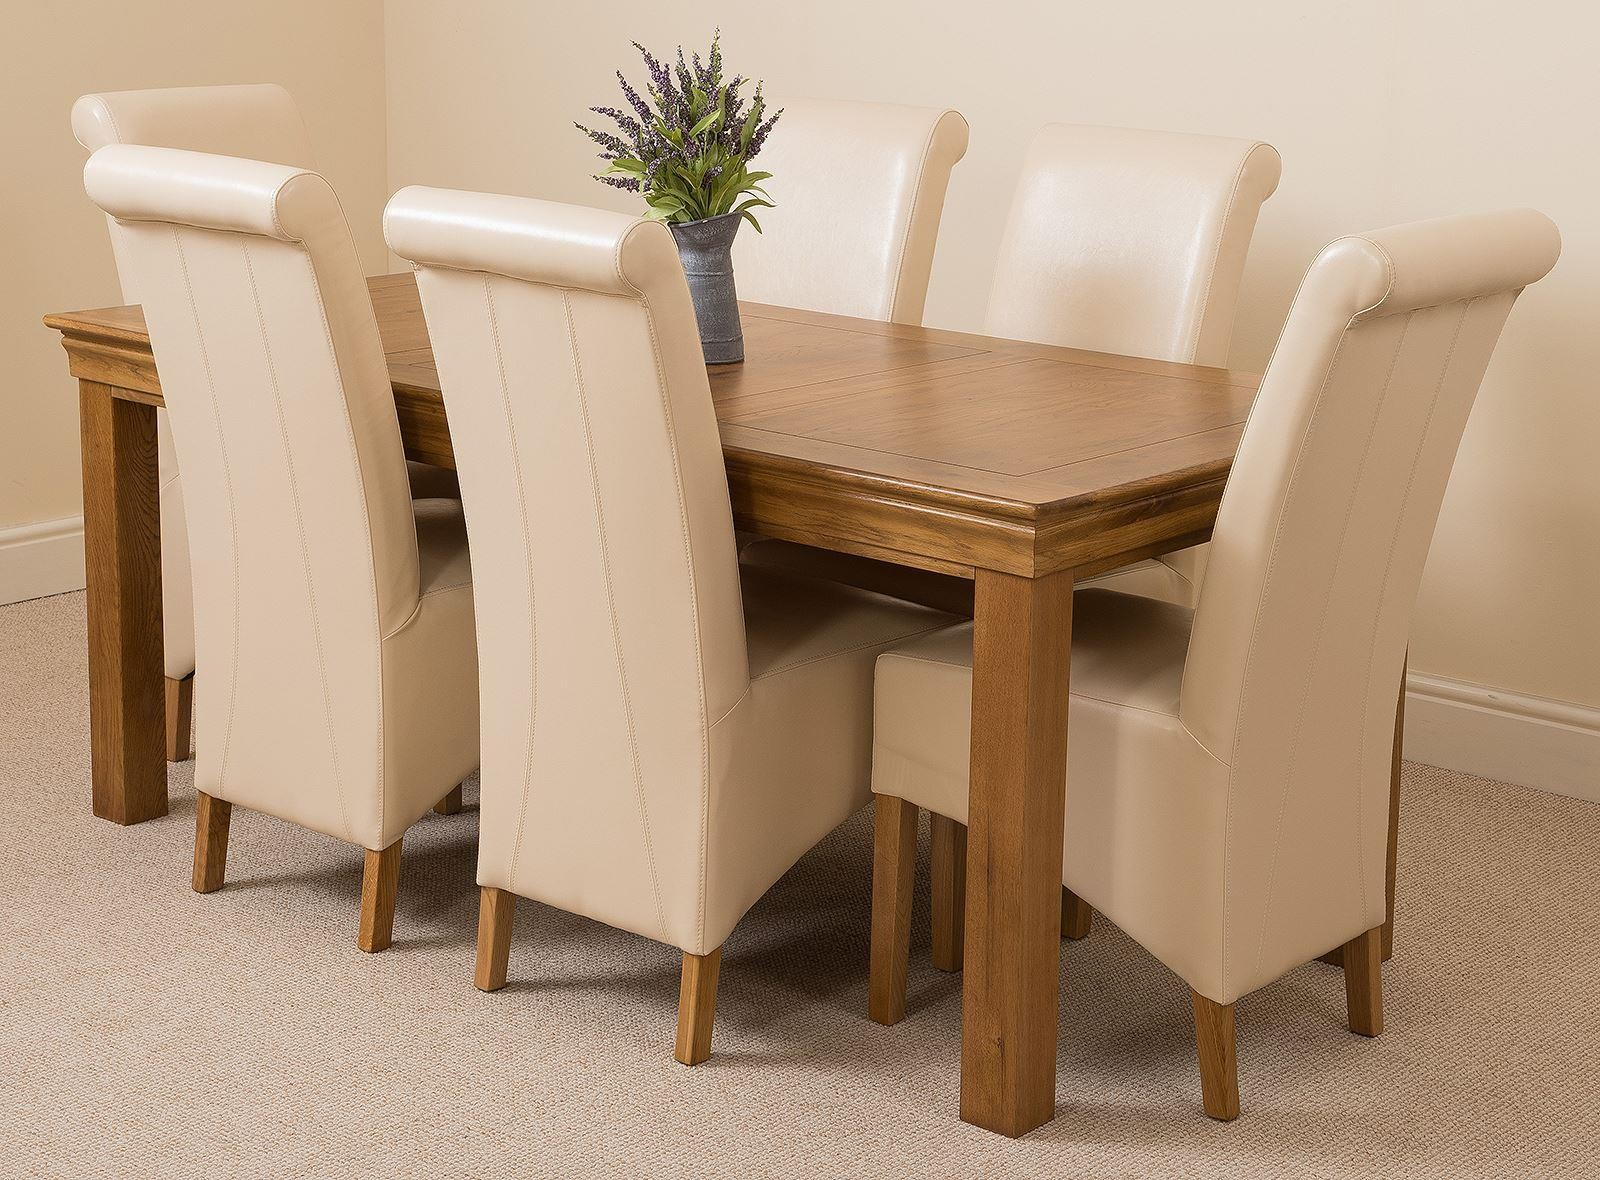 French Chateau Rustic Solid Oak 180cm Dining Table with 6 Montana Dining Chairs [Ivory Leather] & French Chateau Rustic Oak Dining Table with 6 Ivory Montana Dining ...